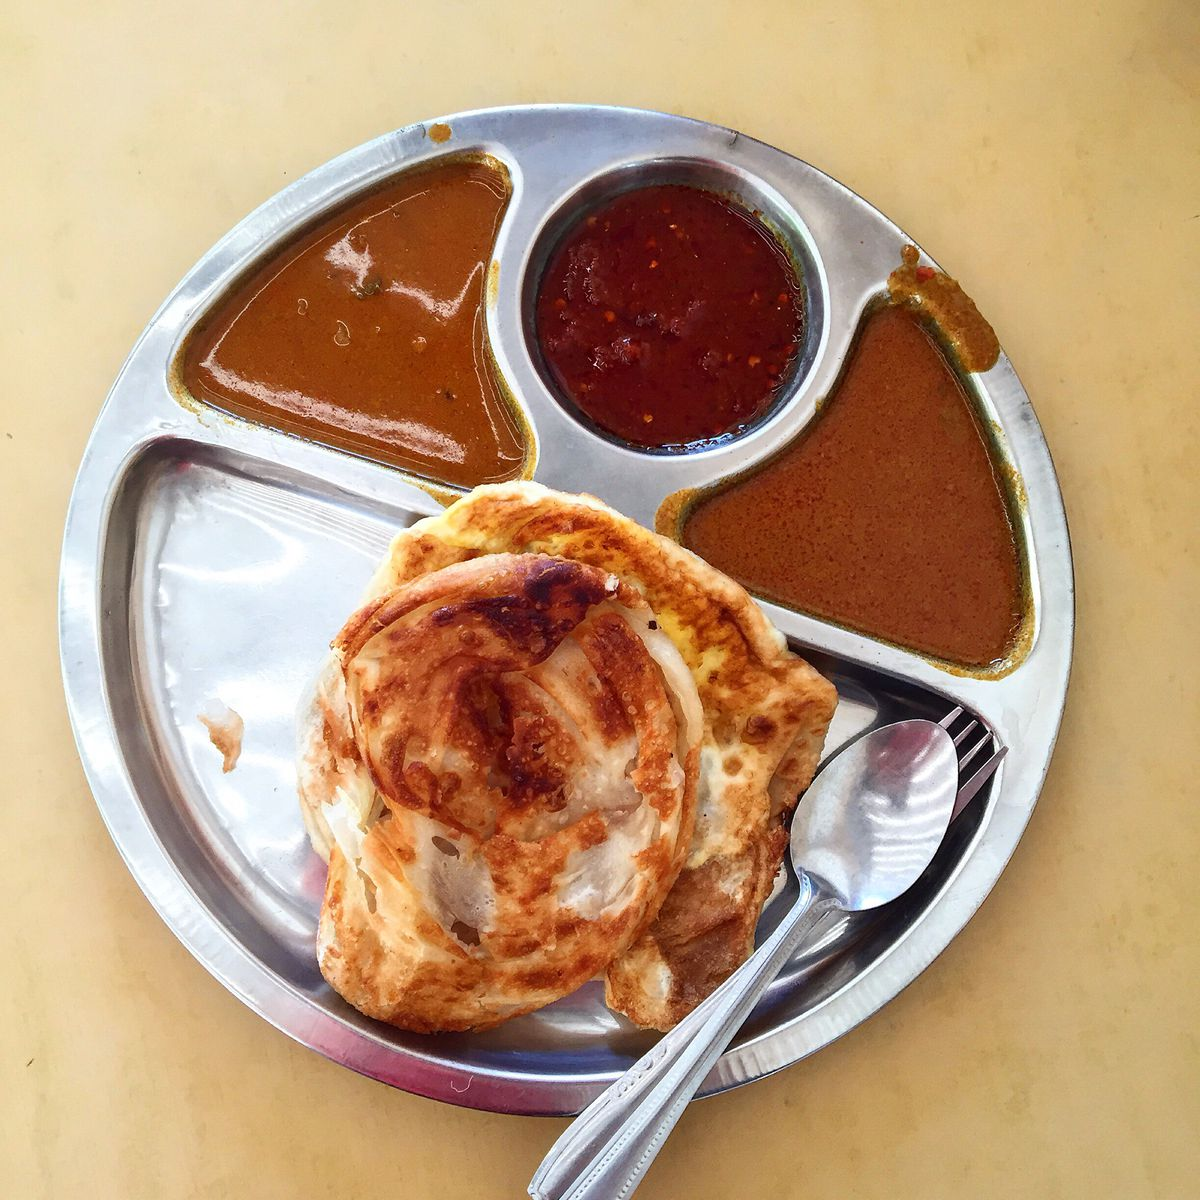 Singapore Street Food Guide: What and Where to Eat - Eater